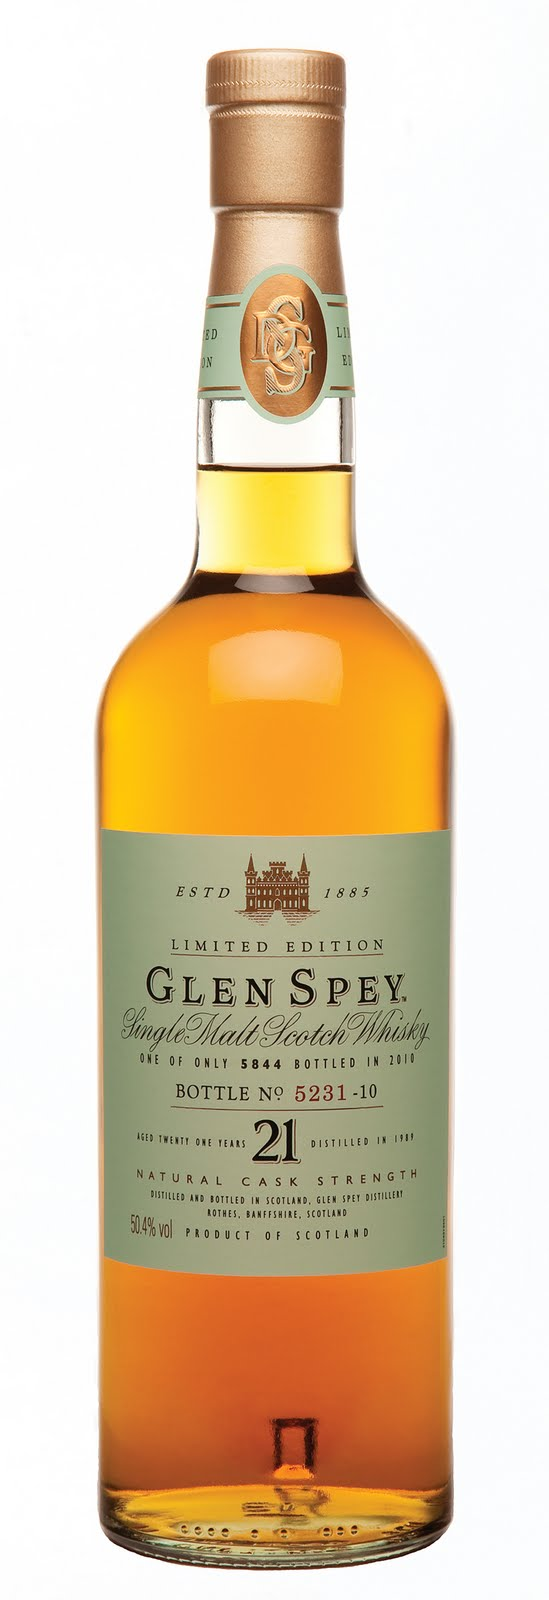 Glen Spey bottle